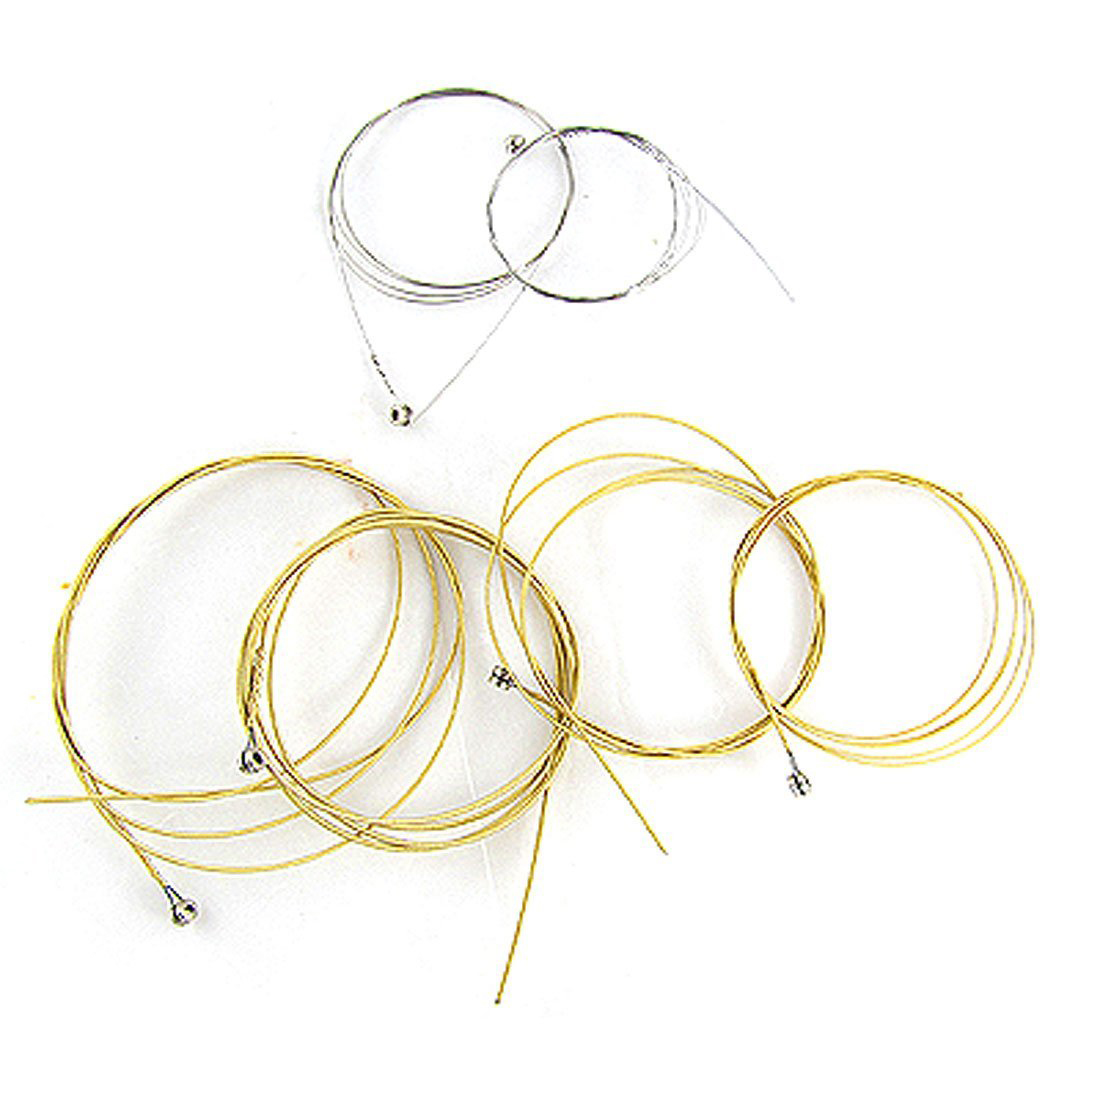 2pcs of6 Pcs Steel Strings Replacement for Acoustic Guitar New Silver+Brass